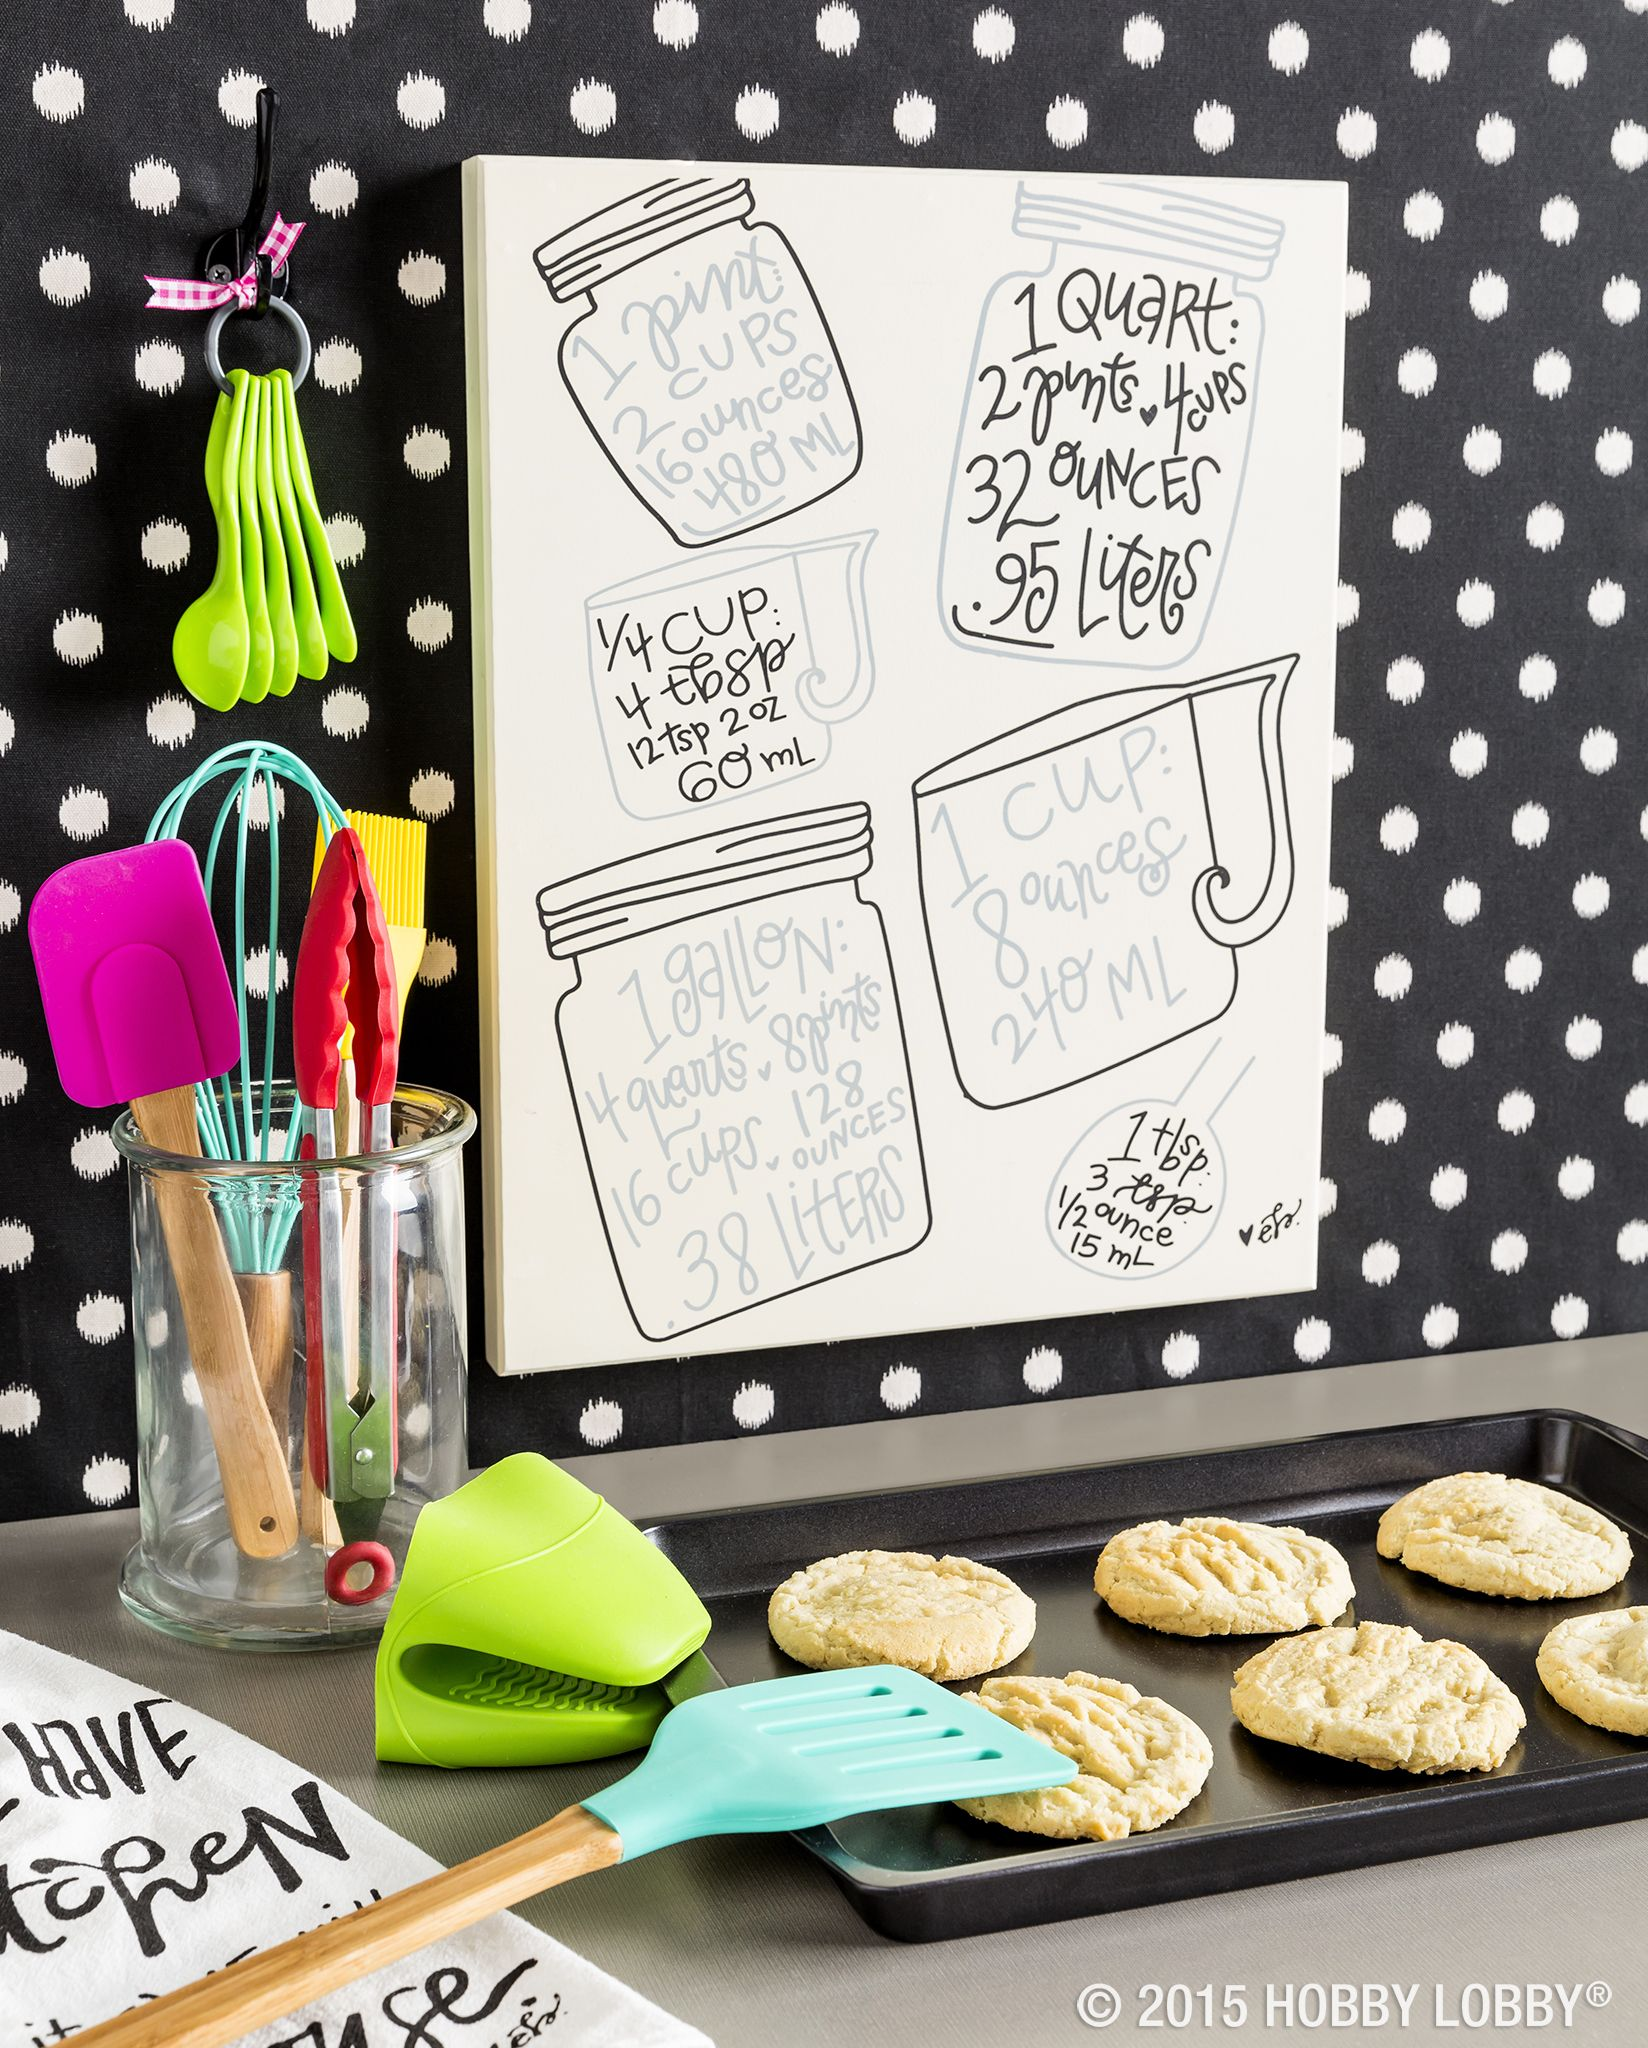 What's more fabulous than colorful kitchen accessories? All the mouth-watering treats you're going to make with them!